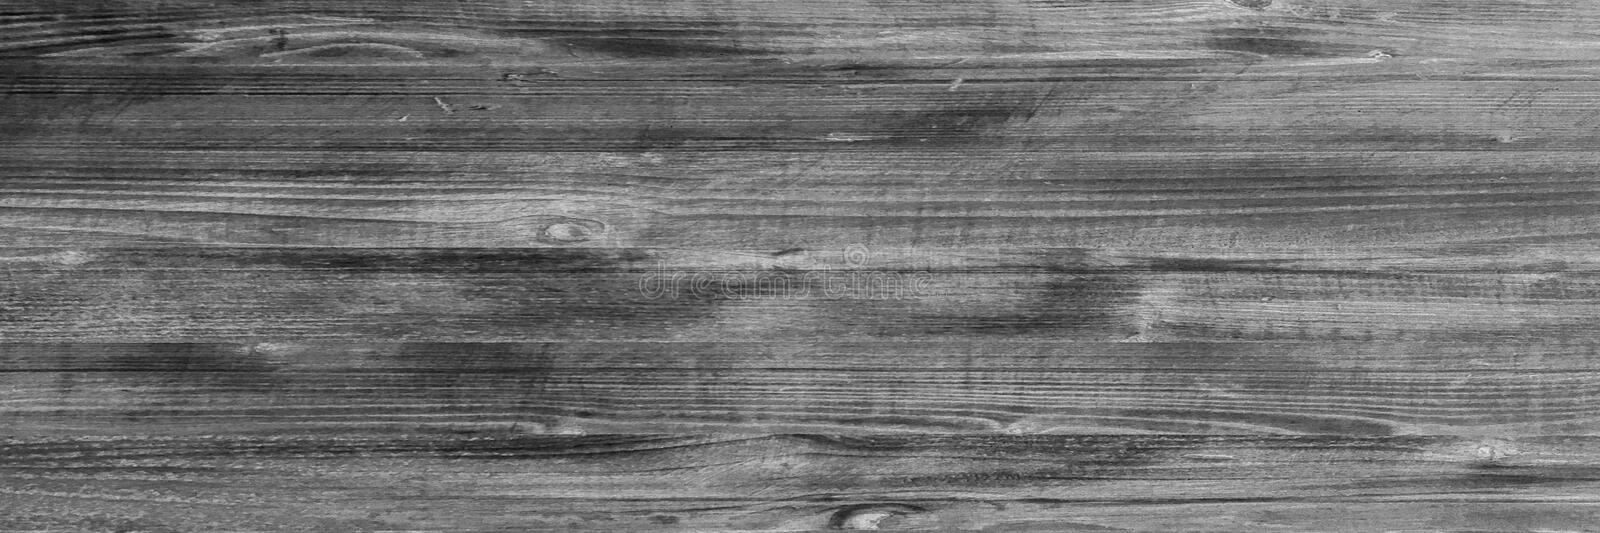 Black wood texture, dark wooden abstract background royalty free stock photo